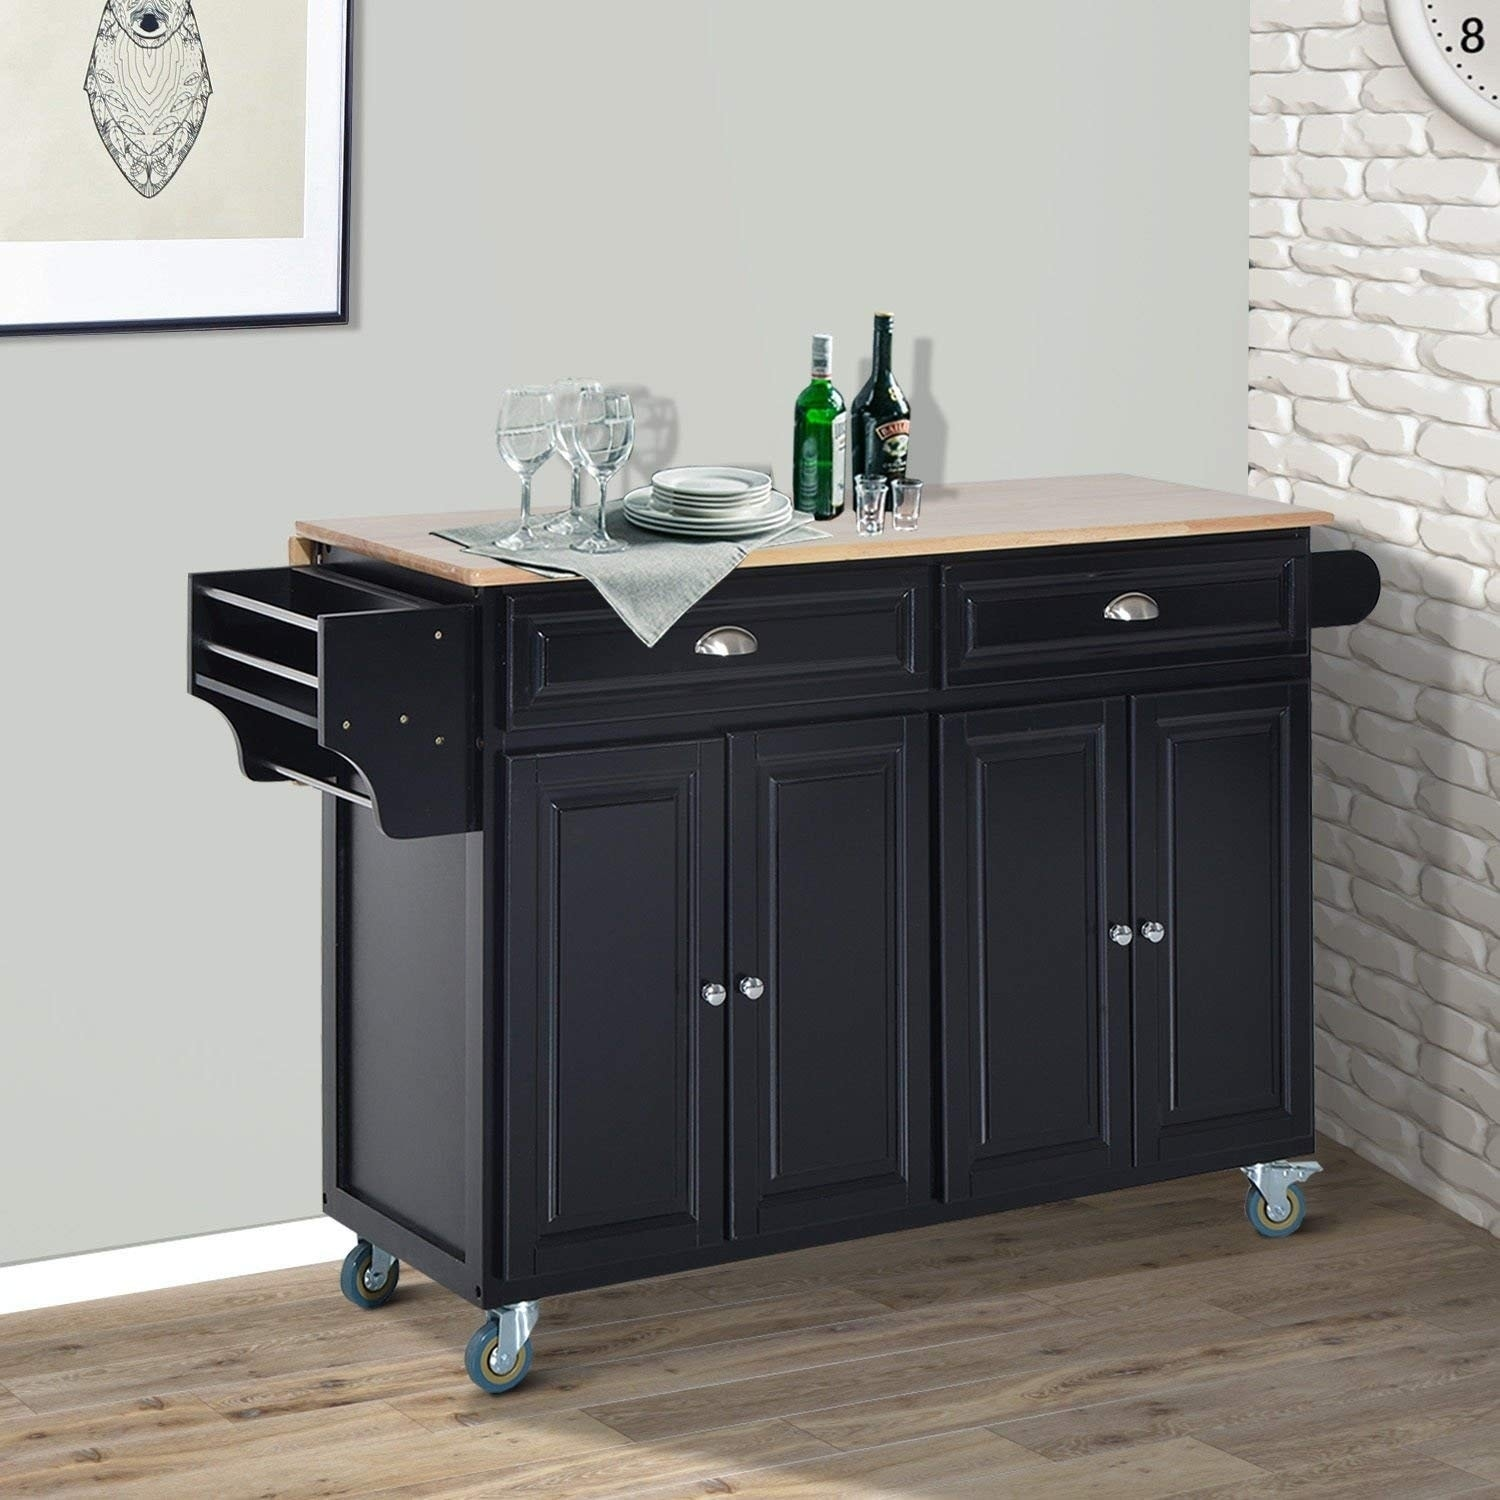 Homcom Wood Top Drop Leaf Multi Storage Cabinet Rolling Kitchen Island Table Cart With Wheels Black Overstock 23055932